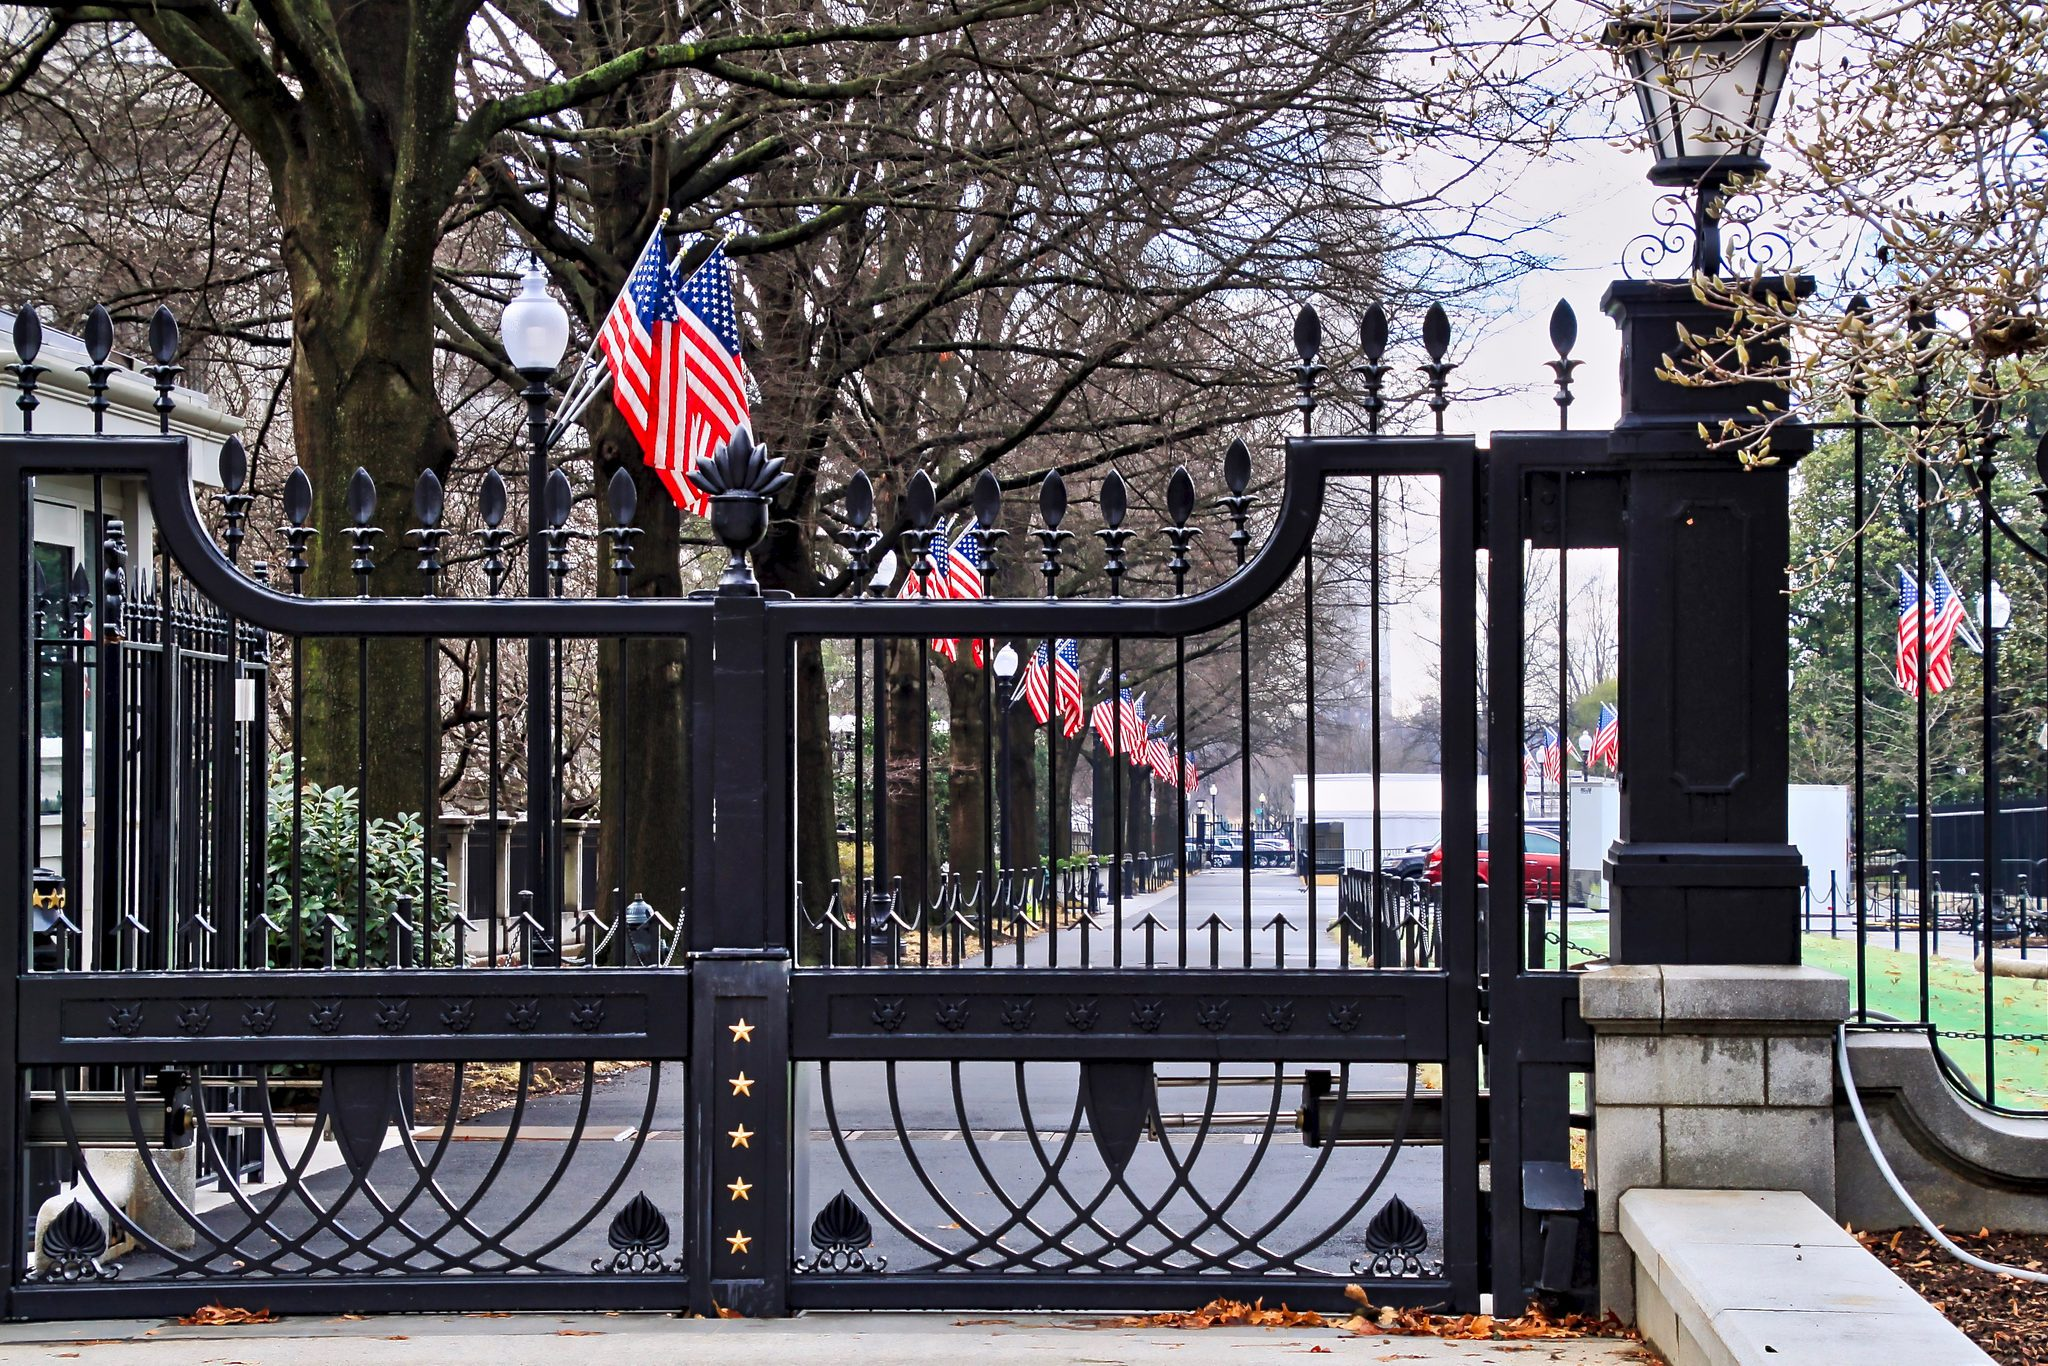 American Flags line drive inside gated White House grounds in Washington DC.